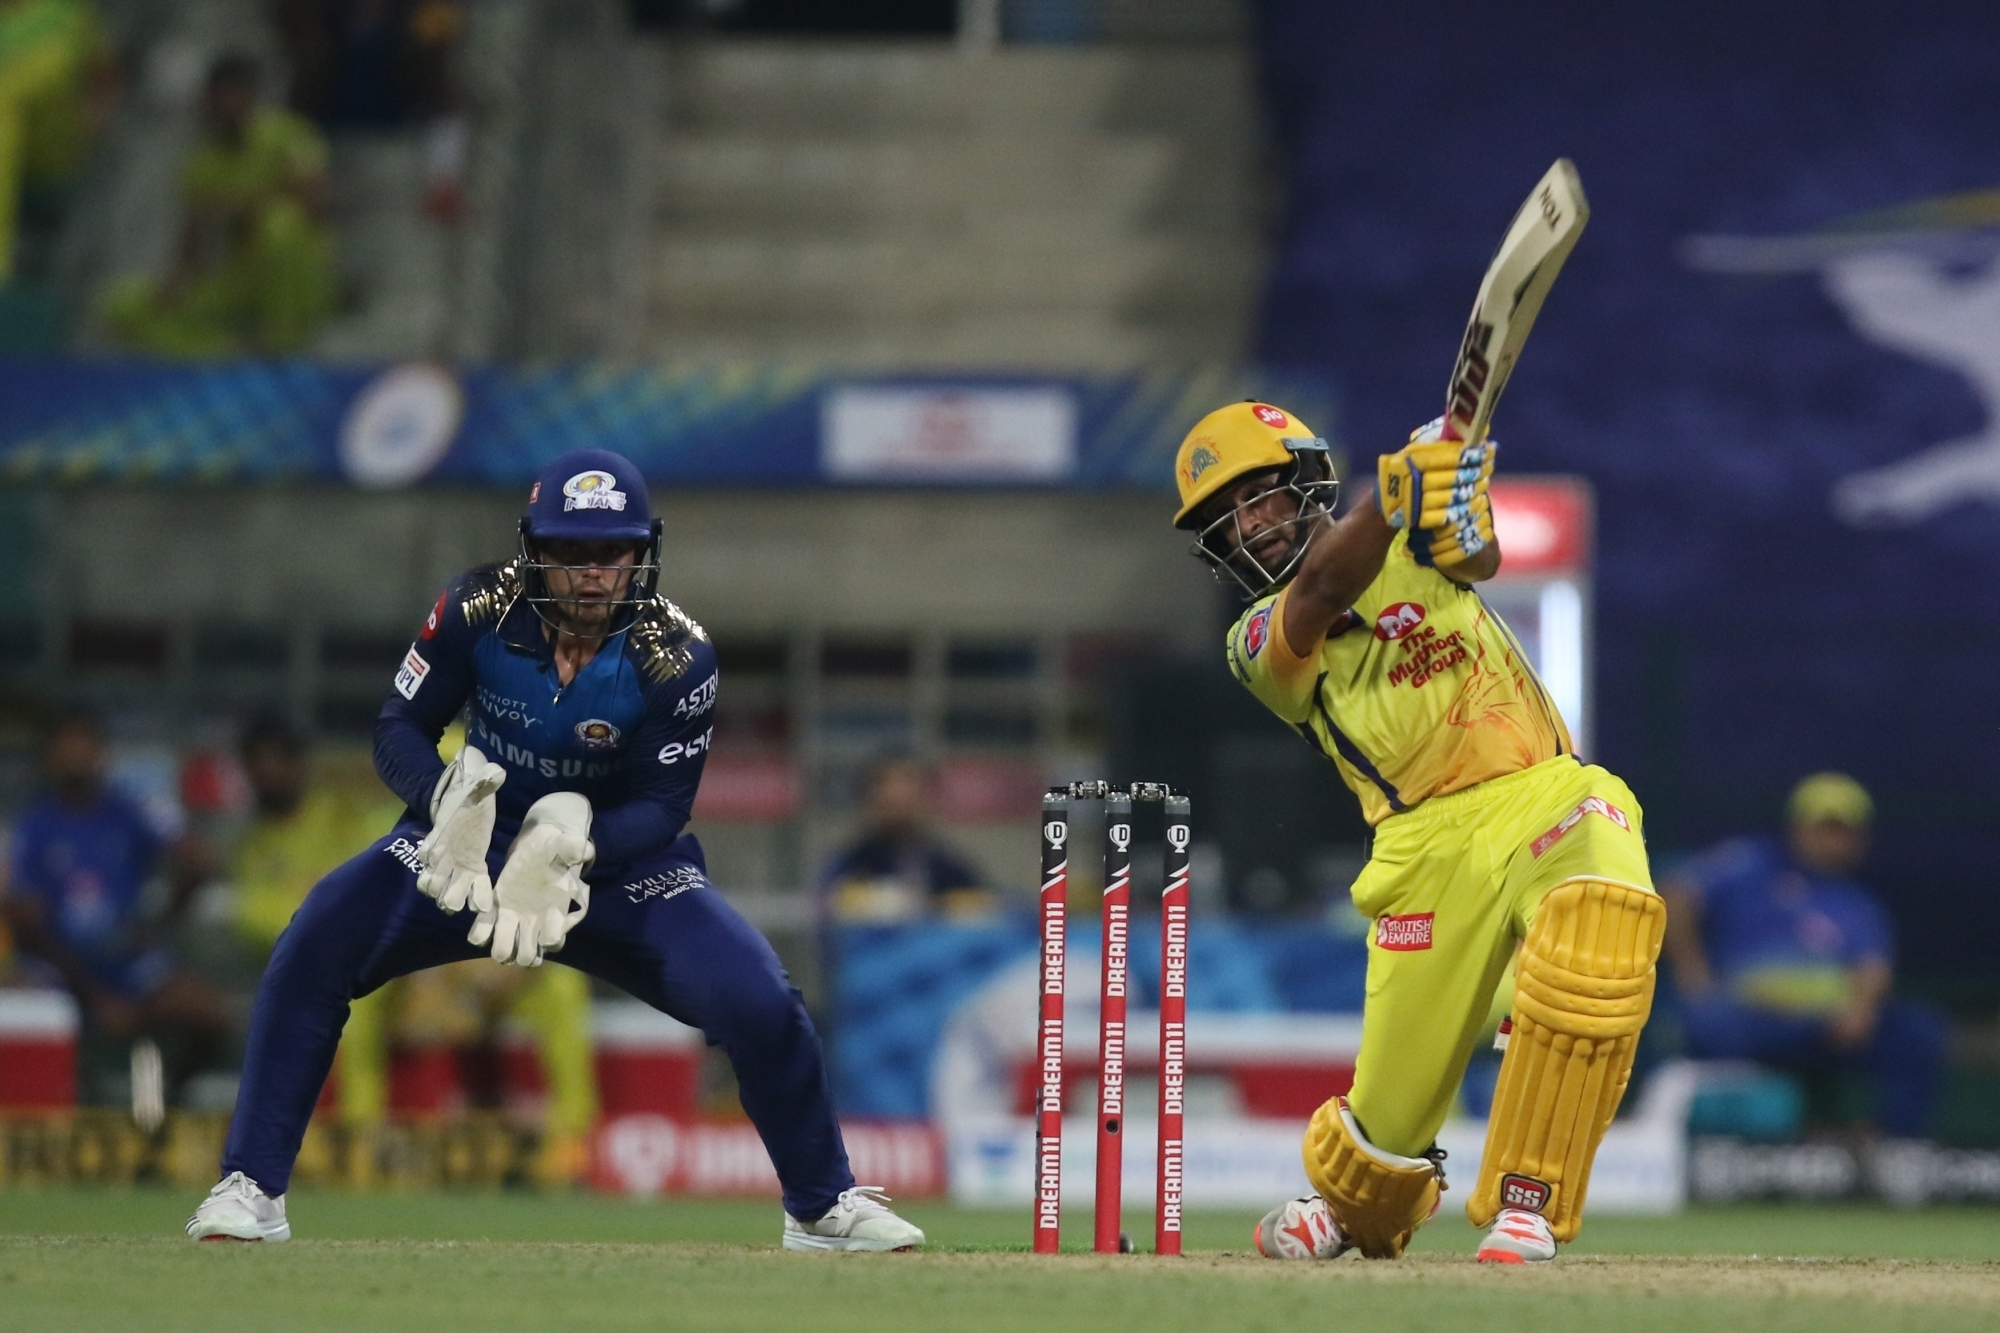 Rayudu played a brilliant knock of 71 during CSK's chase   IANS